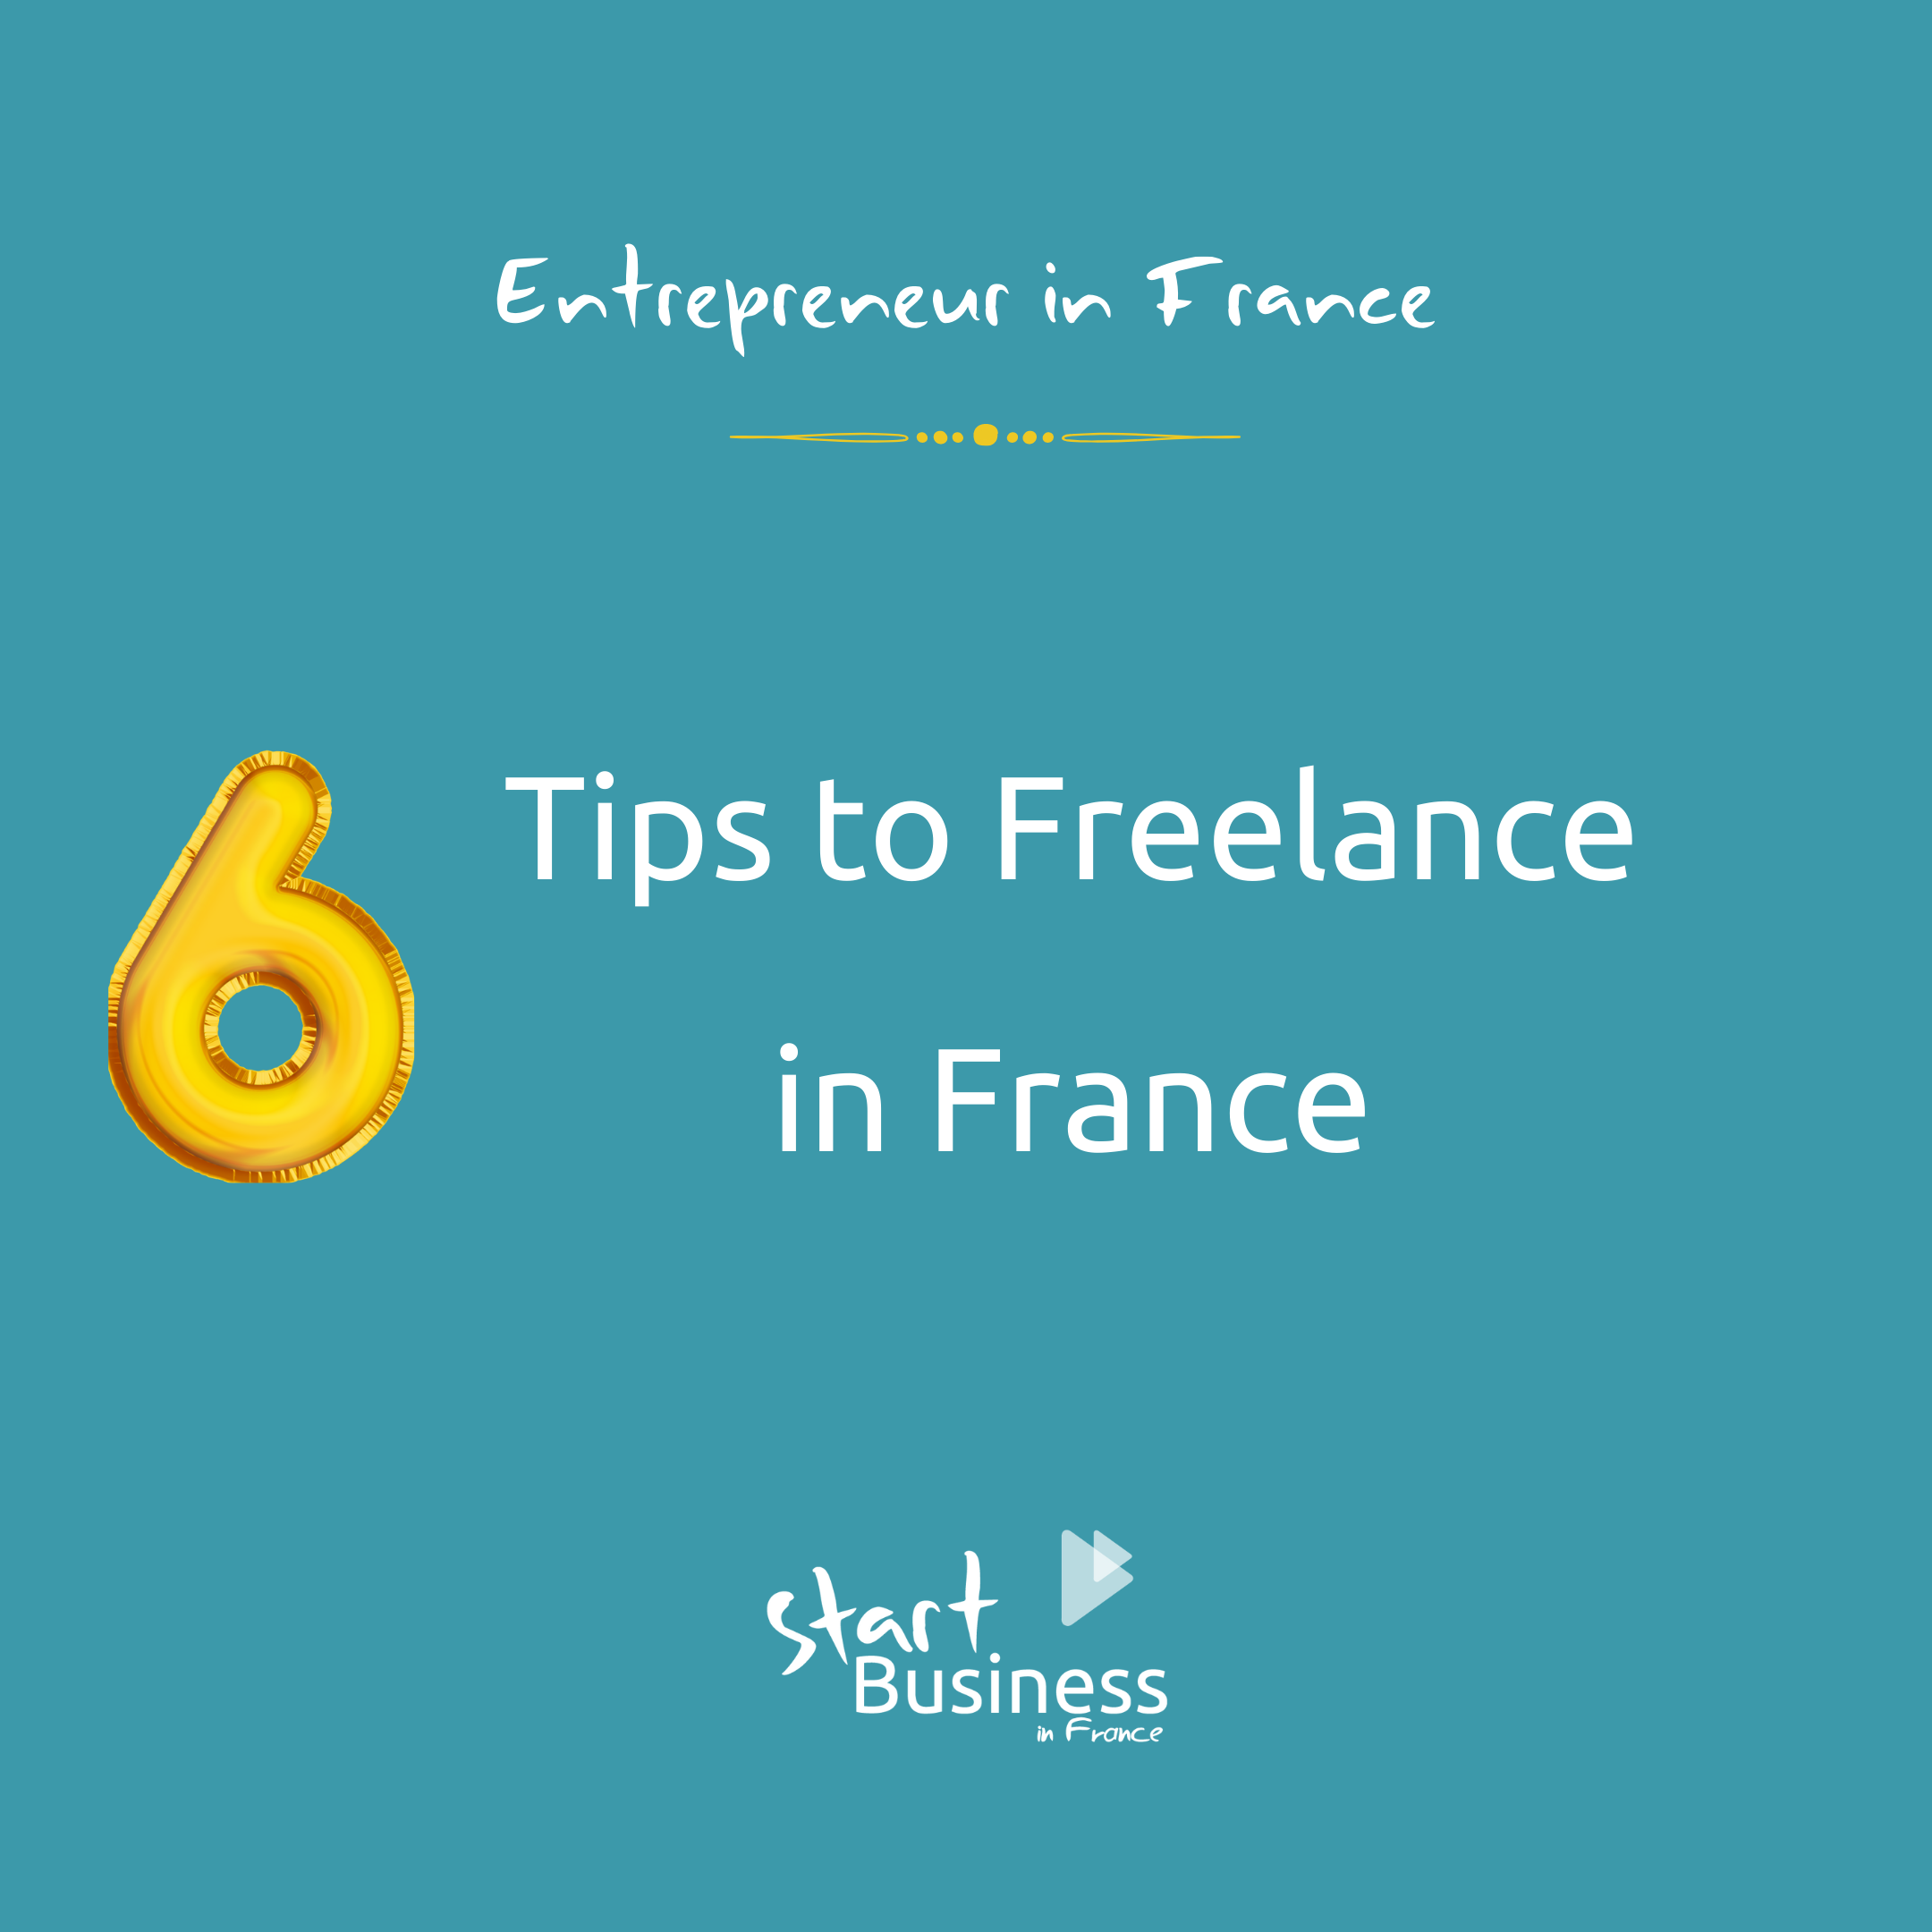 6 tips to freelance in France